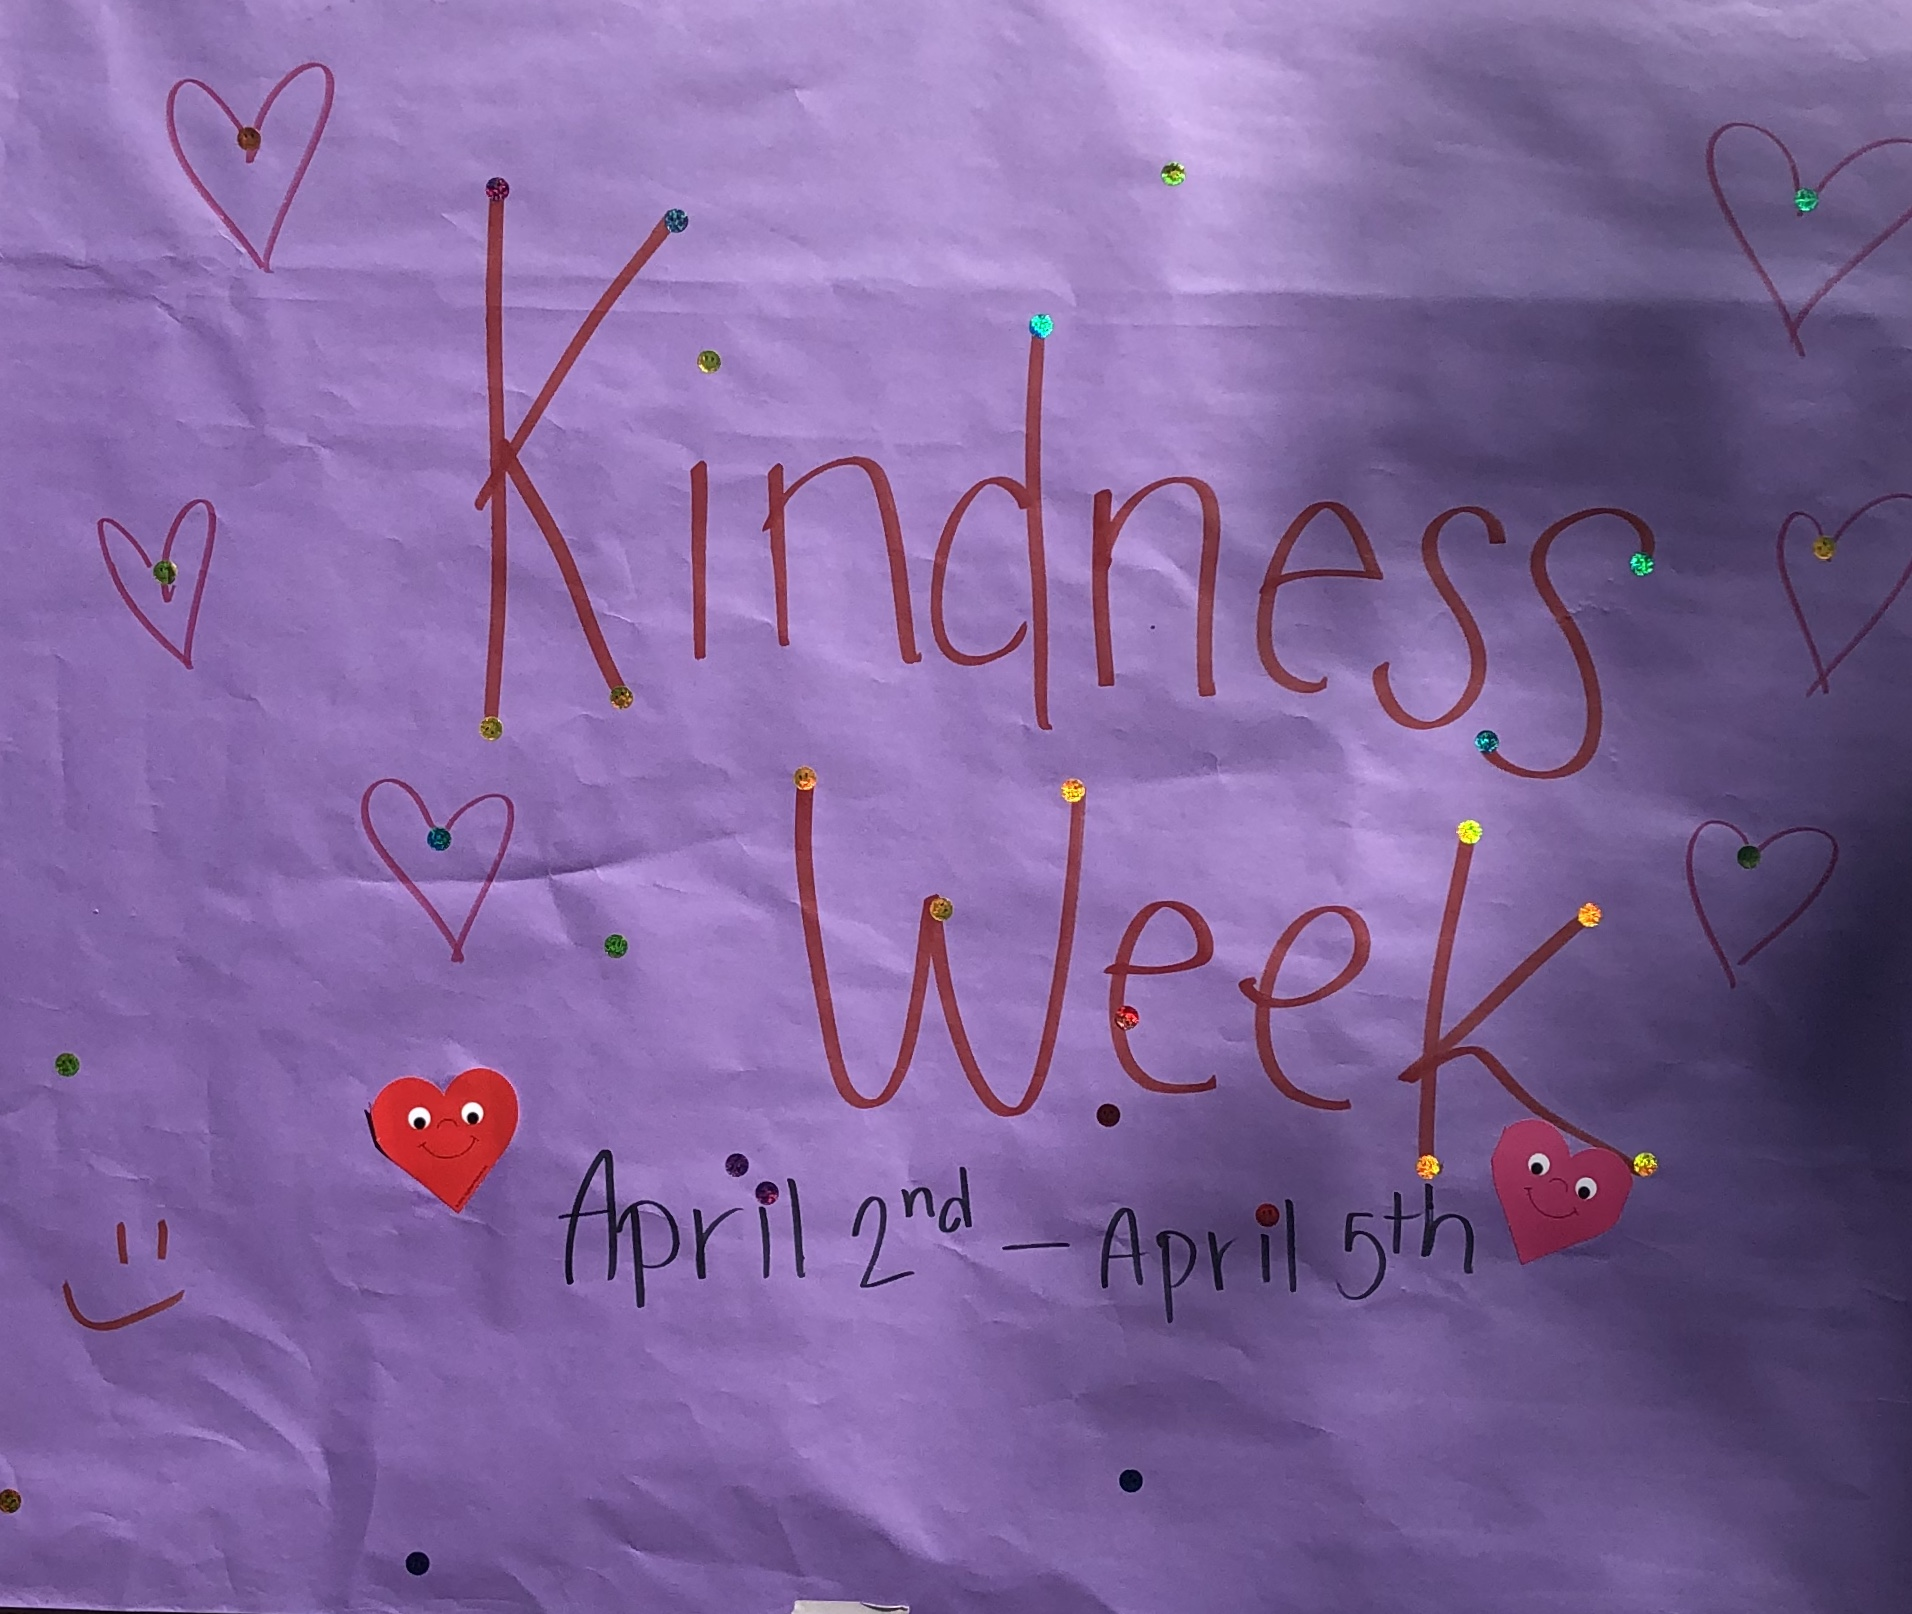 Kindness Week can Touch Hearts